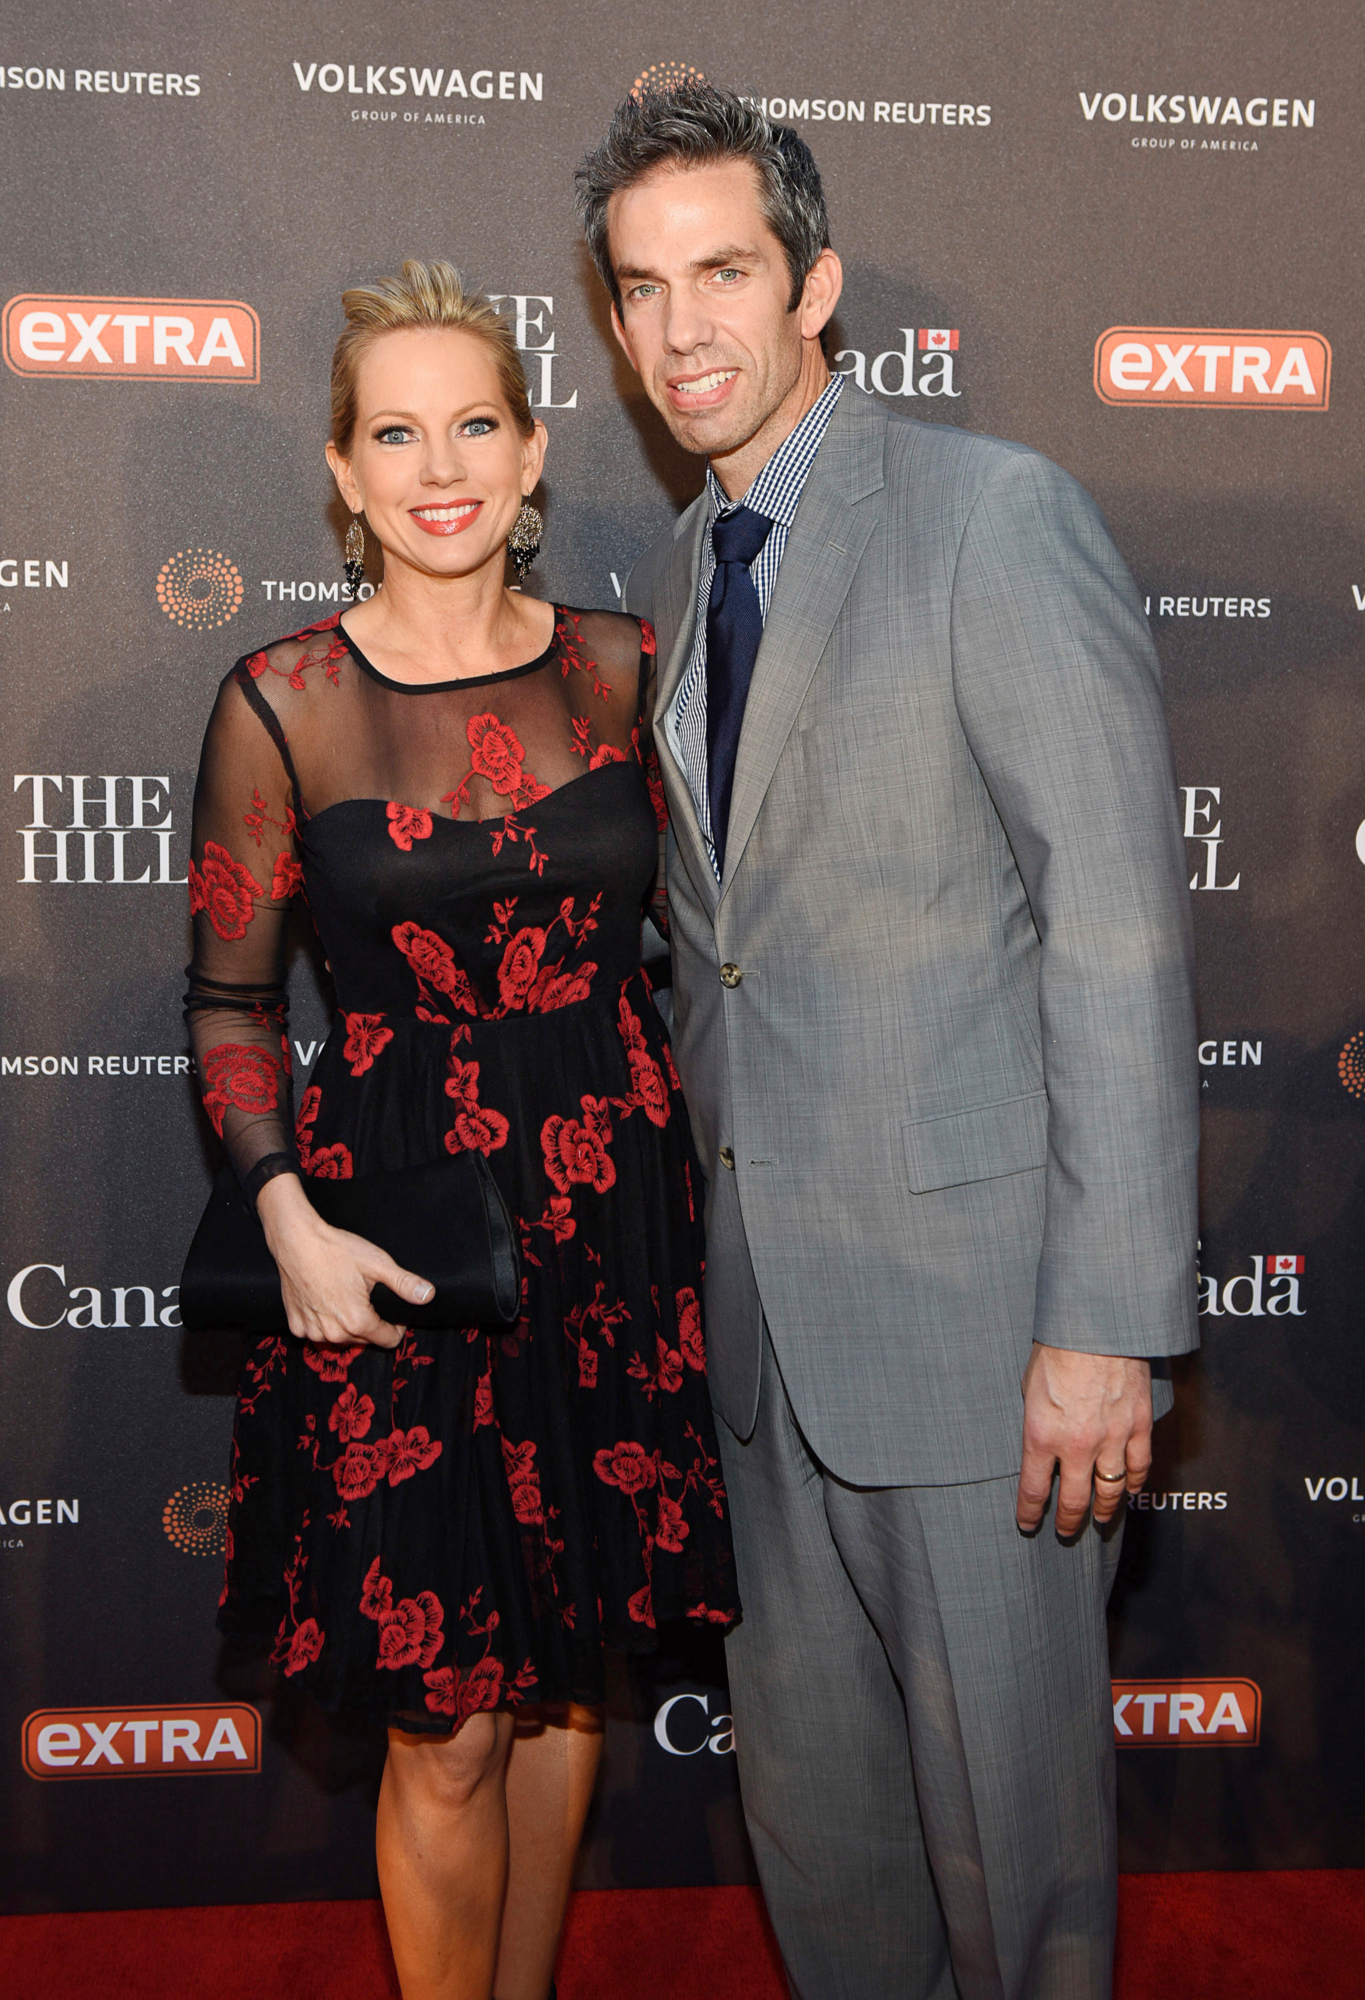 Shannon Bream and husband